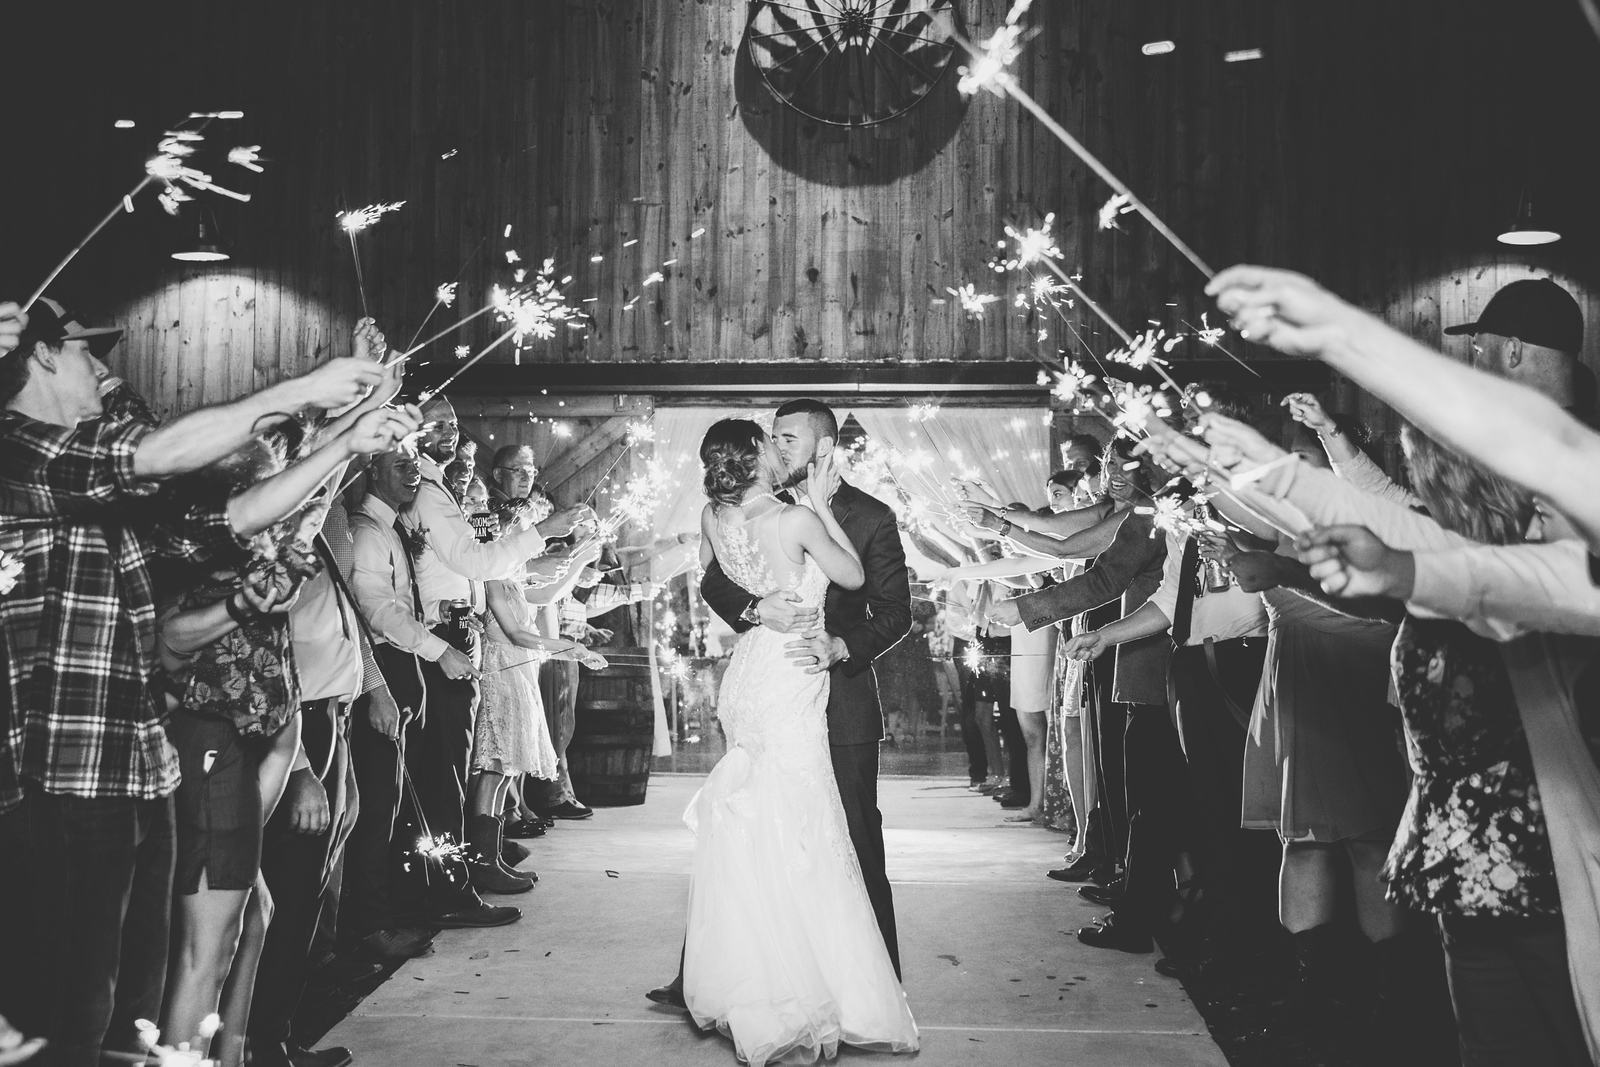 a newlywed couple kissing as they are surrounded by wedding guests holding sparklers as the make their grand exit